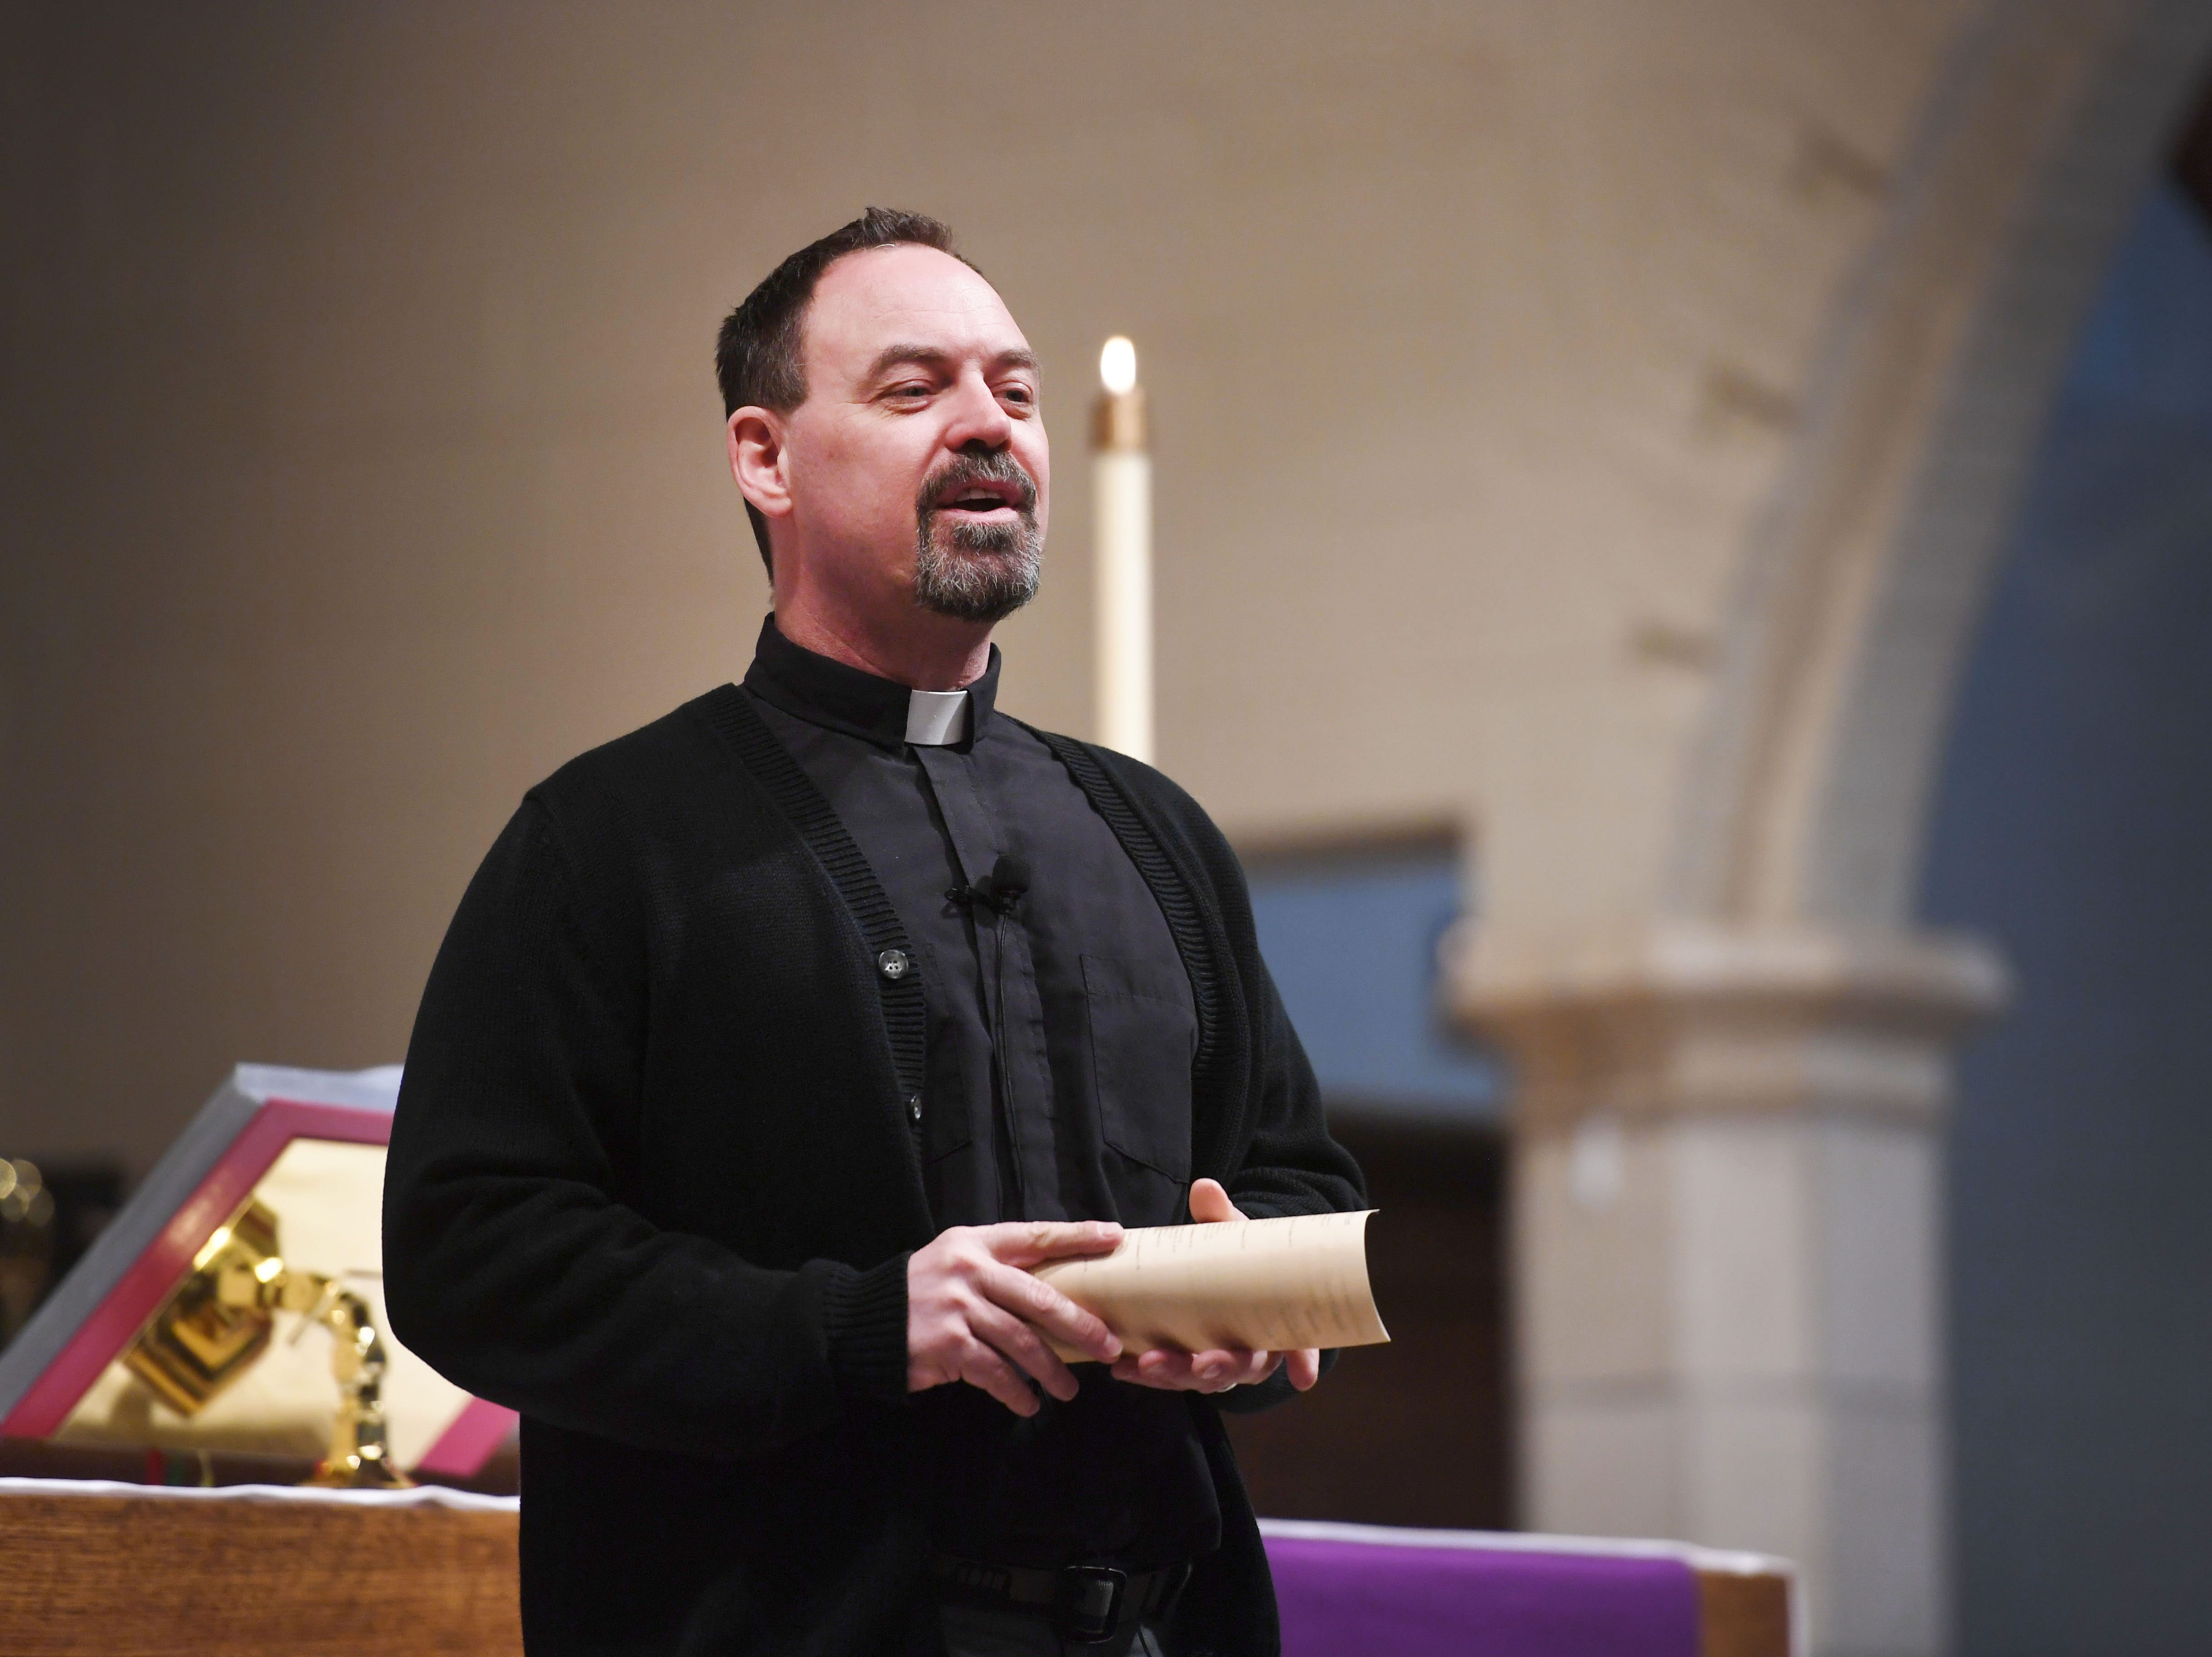 Pastor Layne Nelson does announcements at the beginning of the noon service at East Side Lutheran Church Wednesday, April 10,  in Sioux Falls.